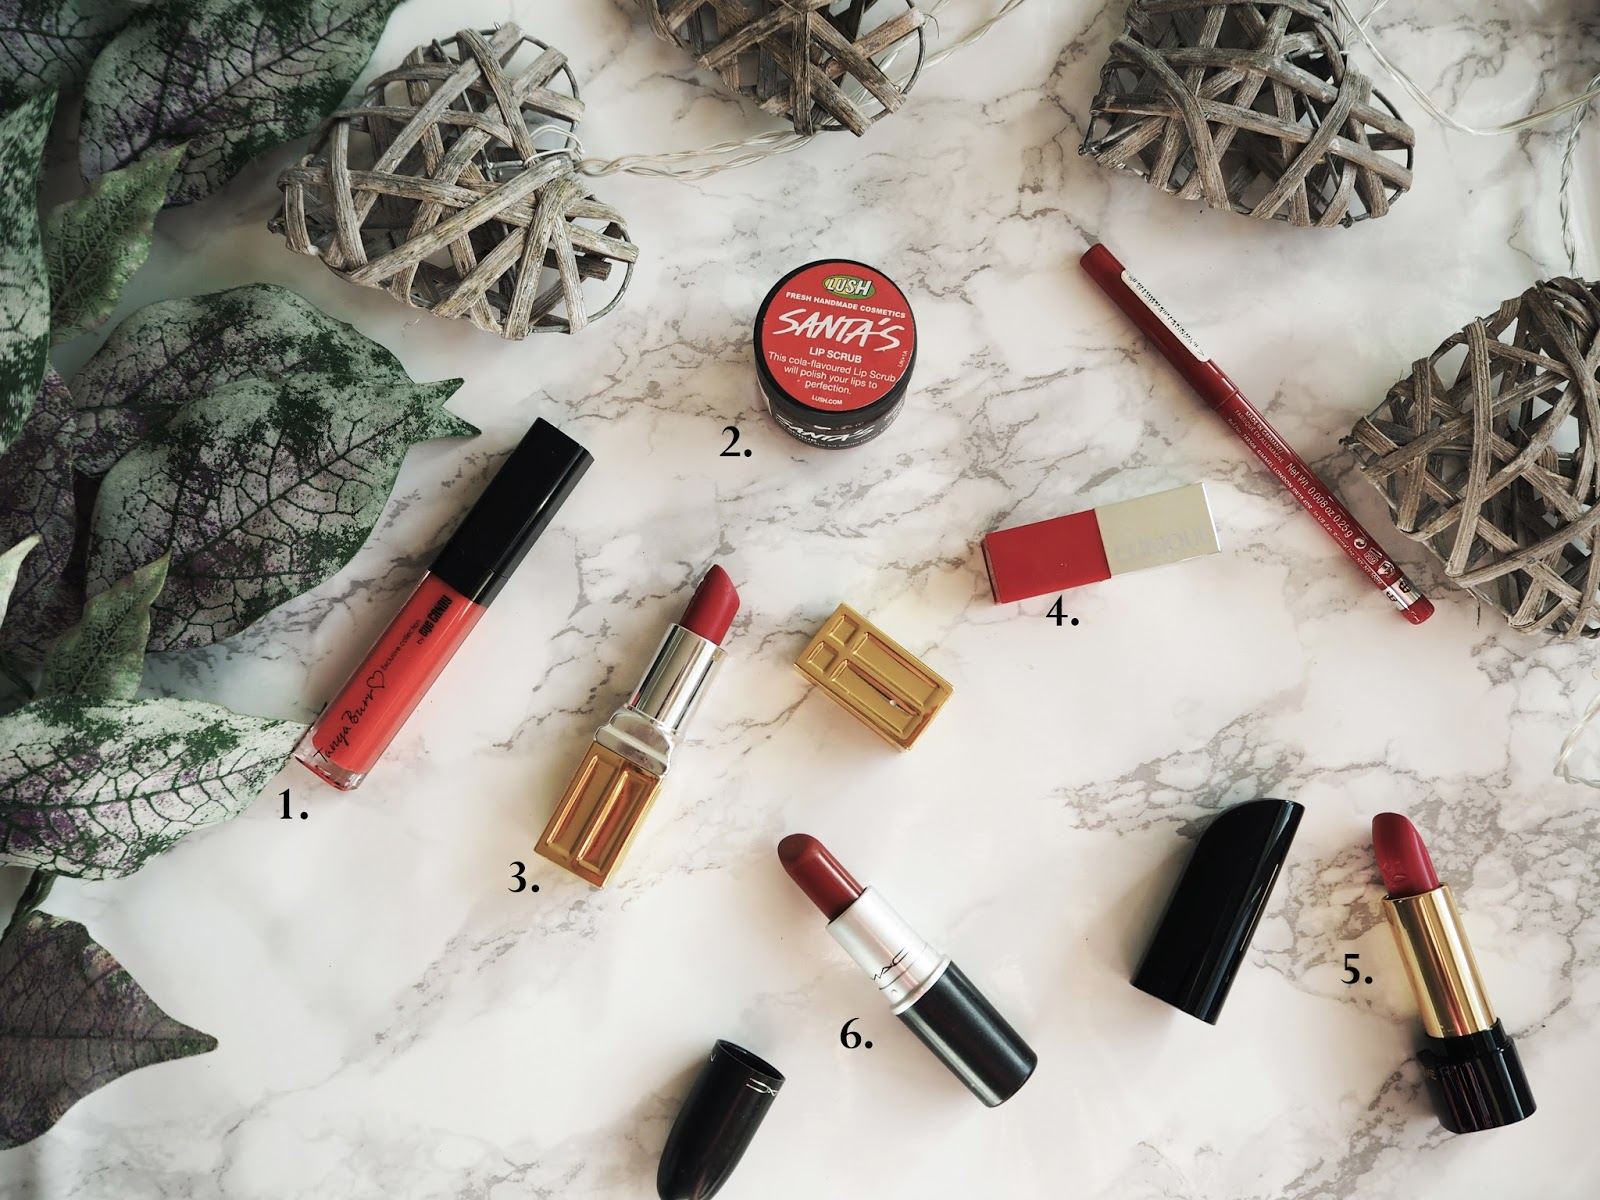 The Red Lip Edit // Lauren Rose Style Blog // Fashion Beauty Lifestyle London ft. Mac, Lancome, Clinique, Elizabeth Arden // Christmas Festive Make-up